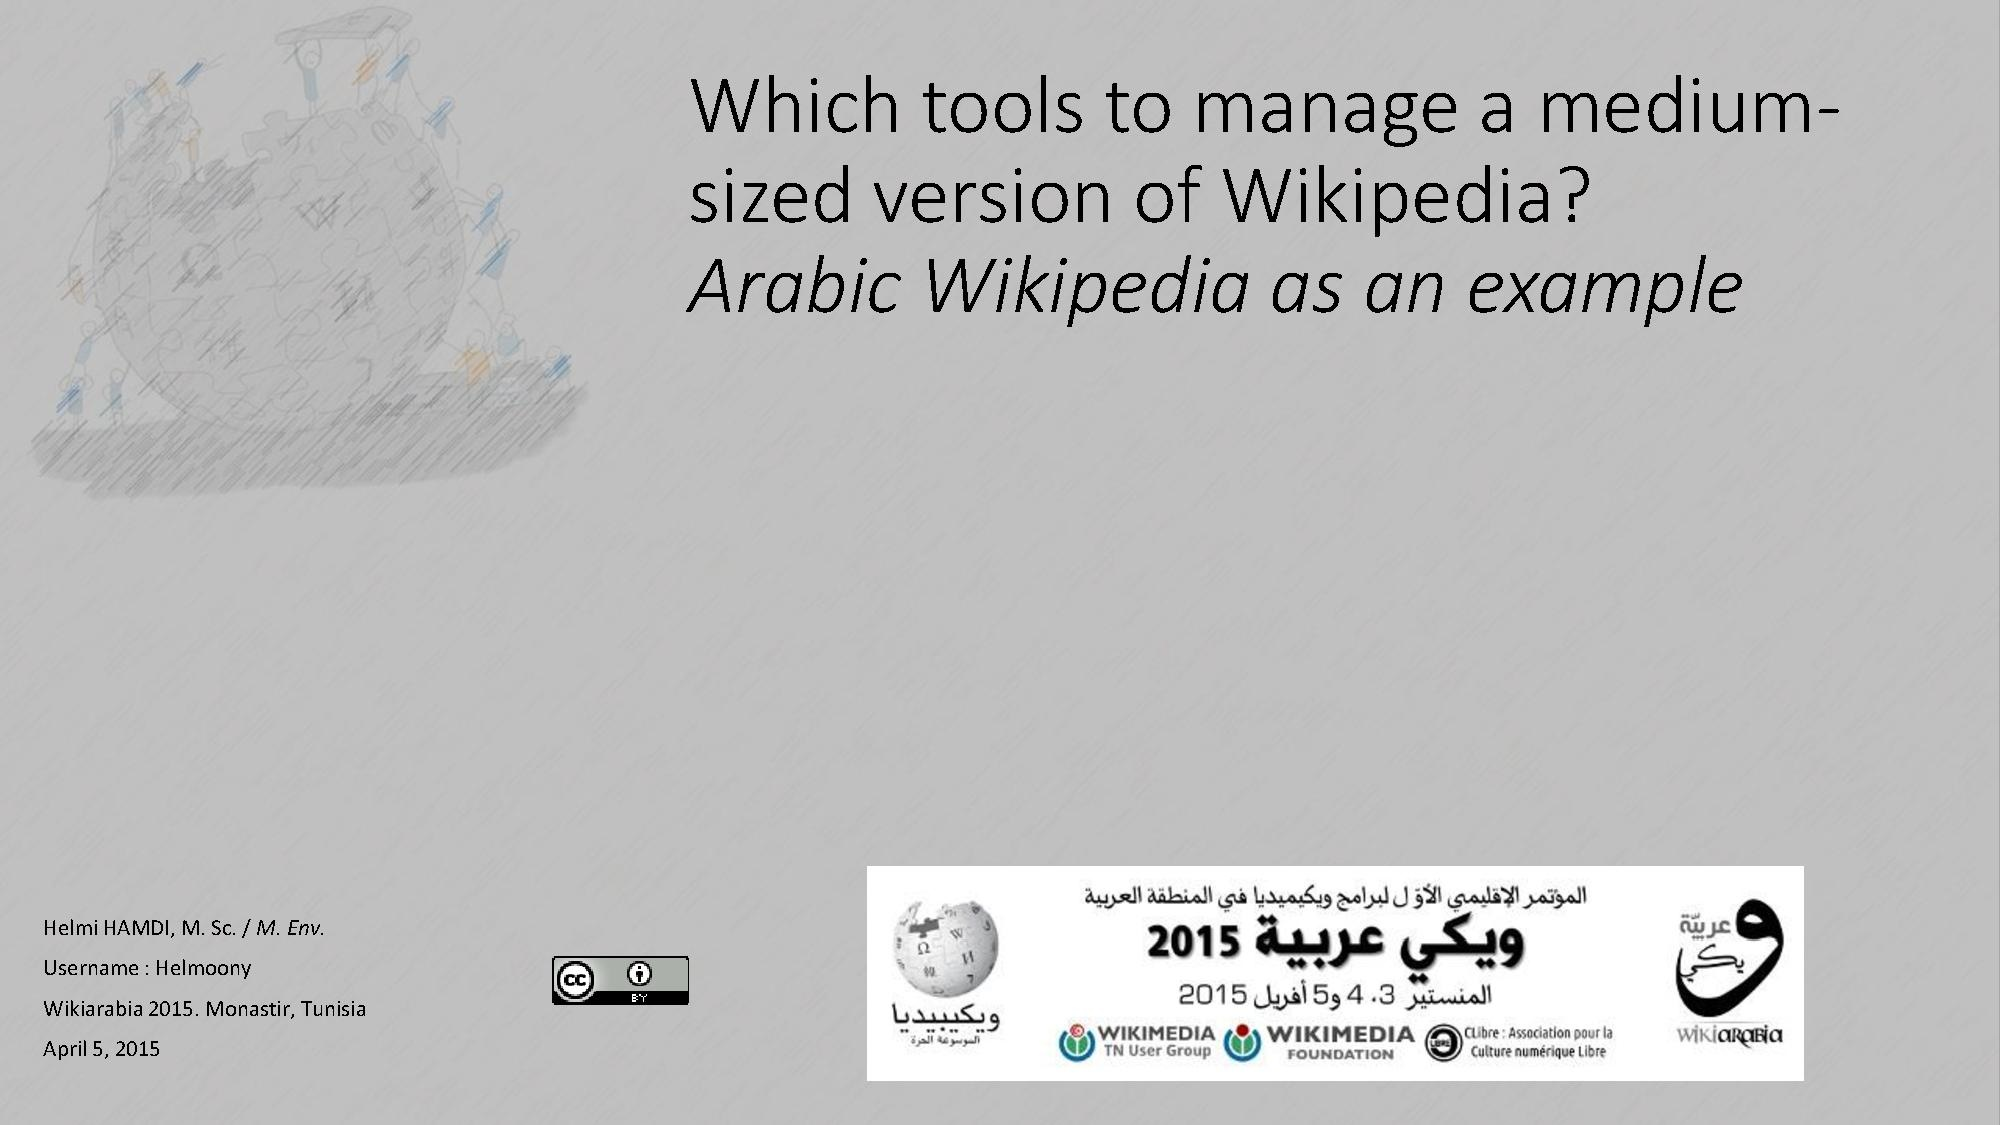 Which tools to manage a medium-sized version of Wikipedia? Arabic Wikipedia as an example